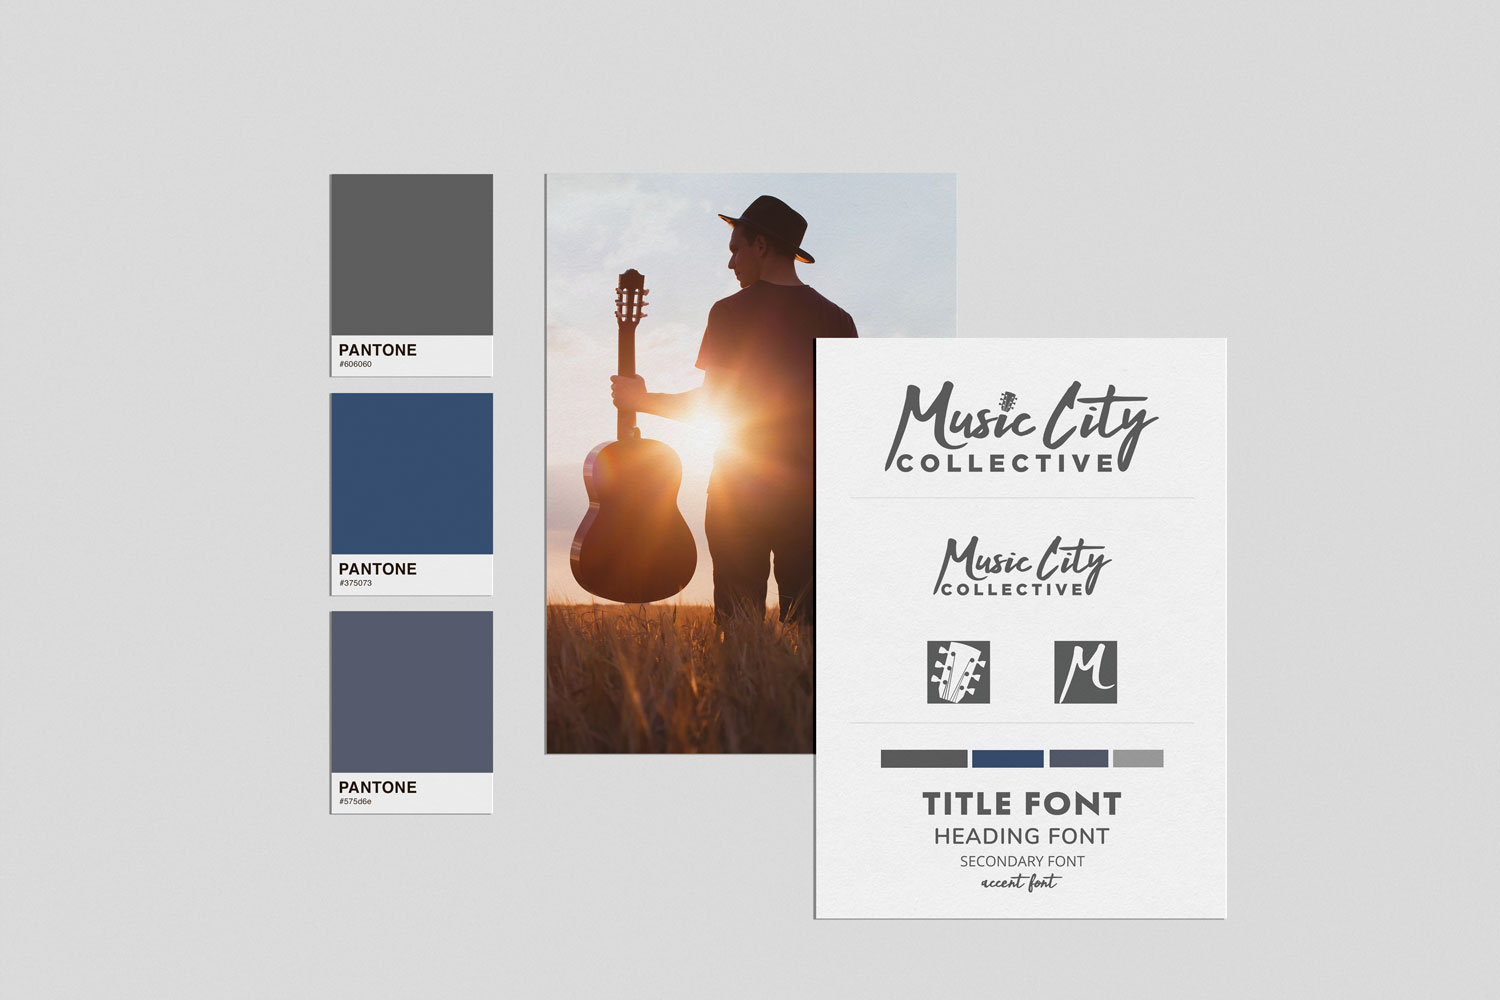 Music_City_Collective_custom_brand_logo_and_wordpress_website_design_by_franklin_lane_creative_portfolio1